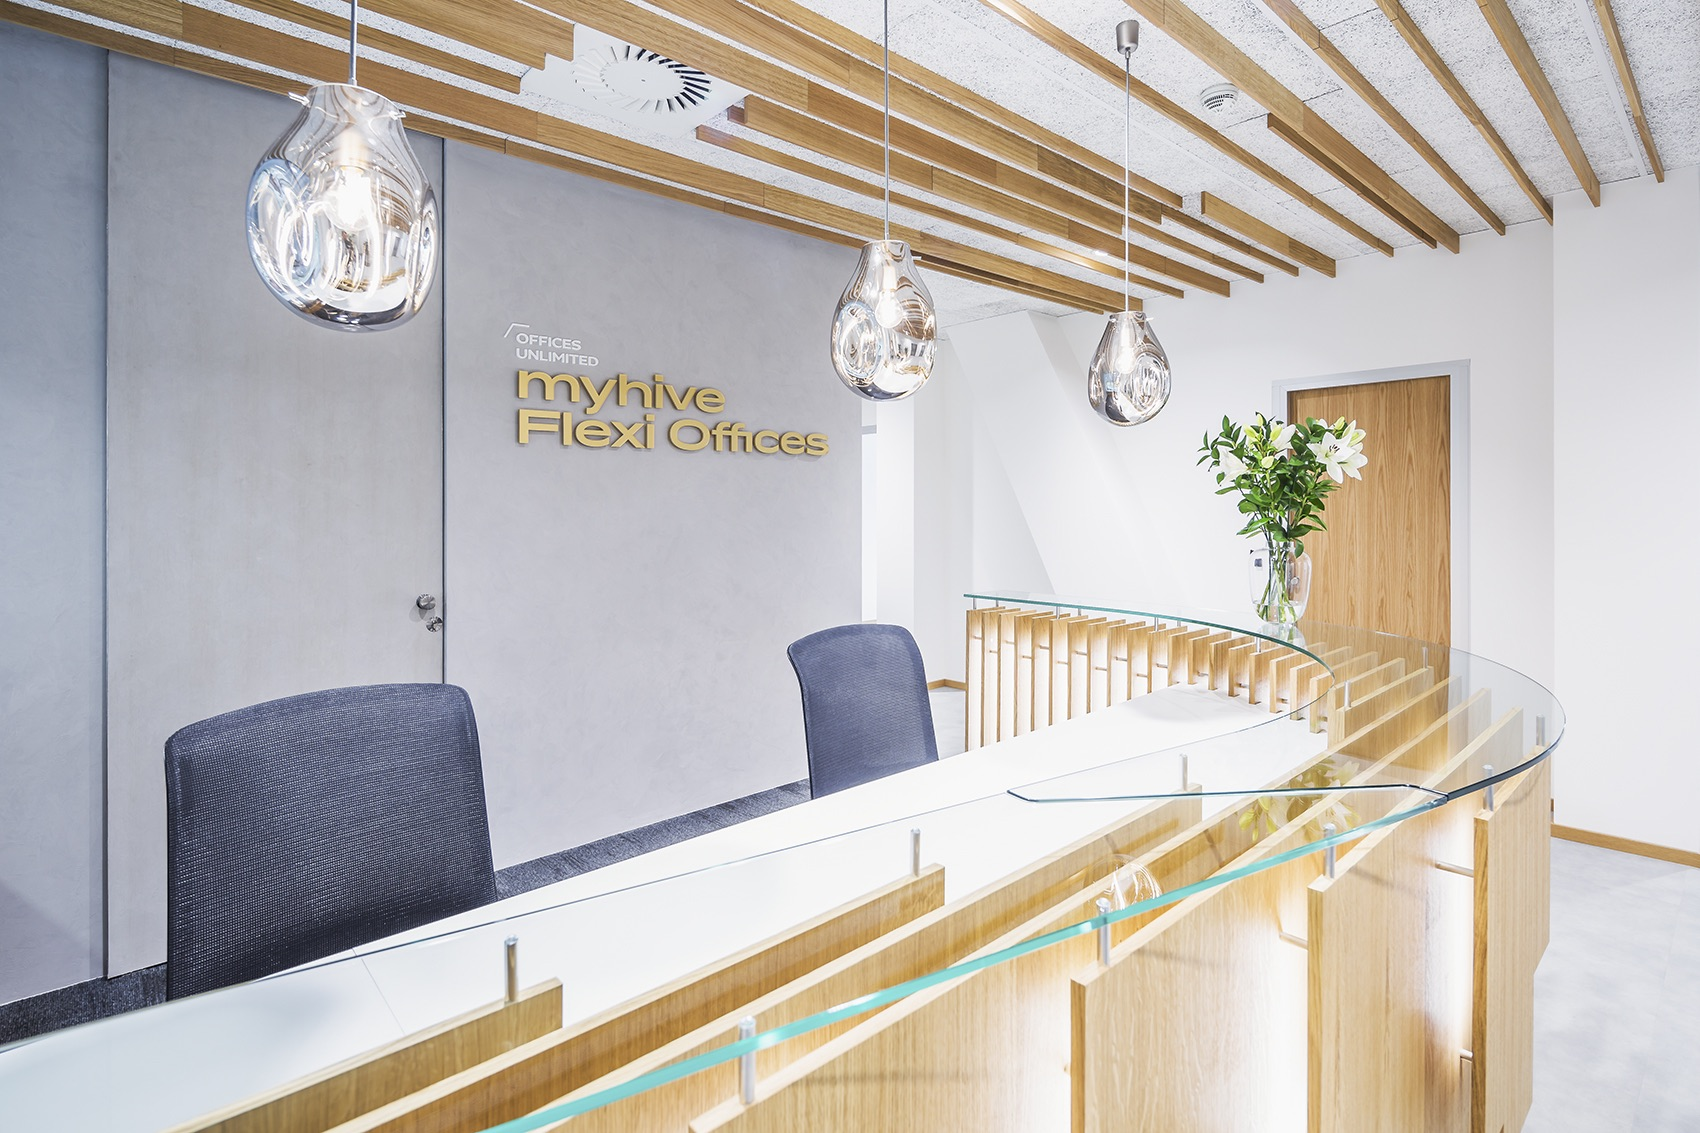 myhive-offices-prague-9